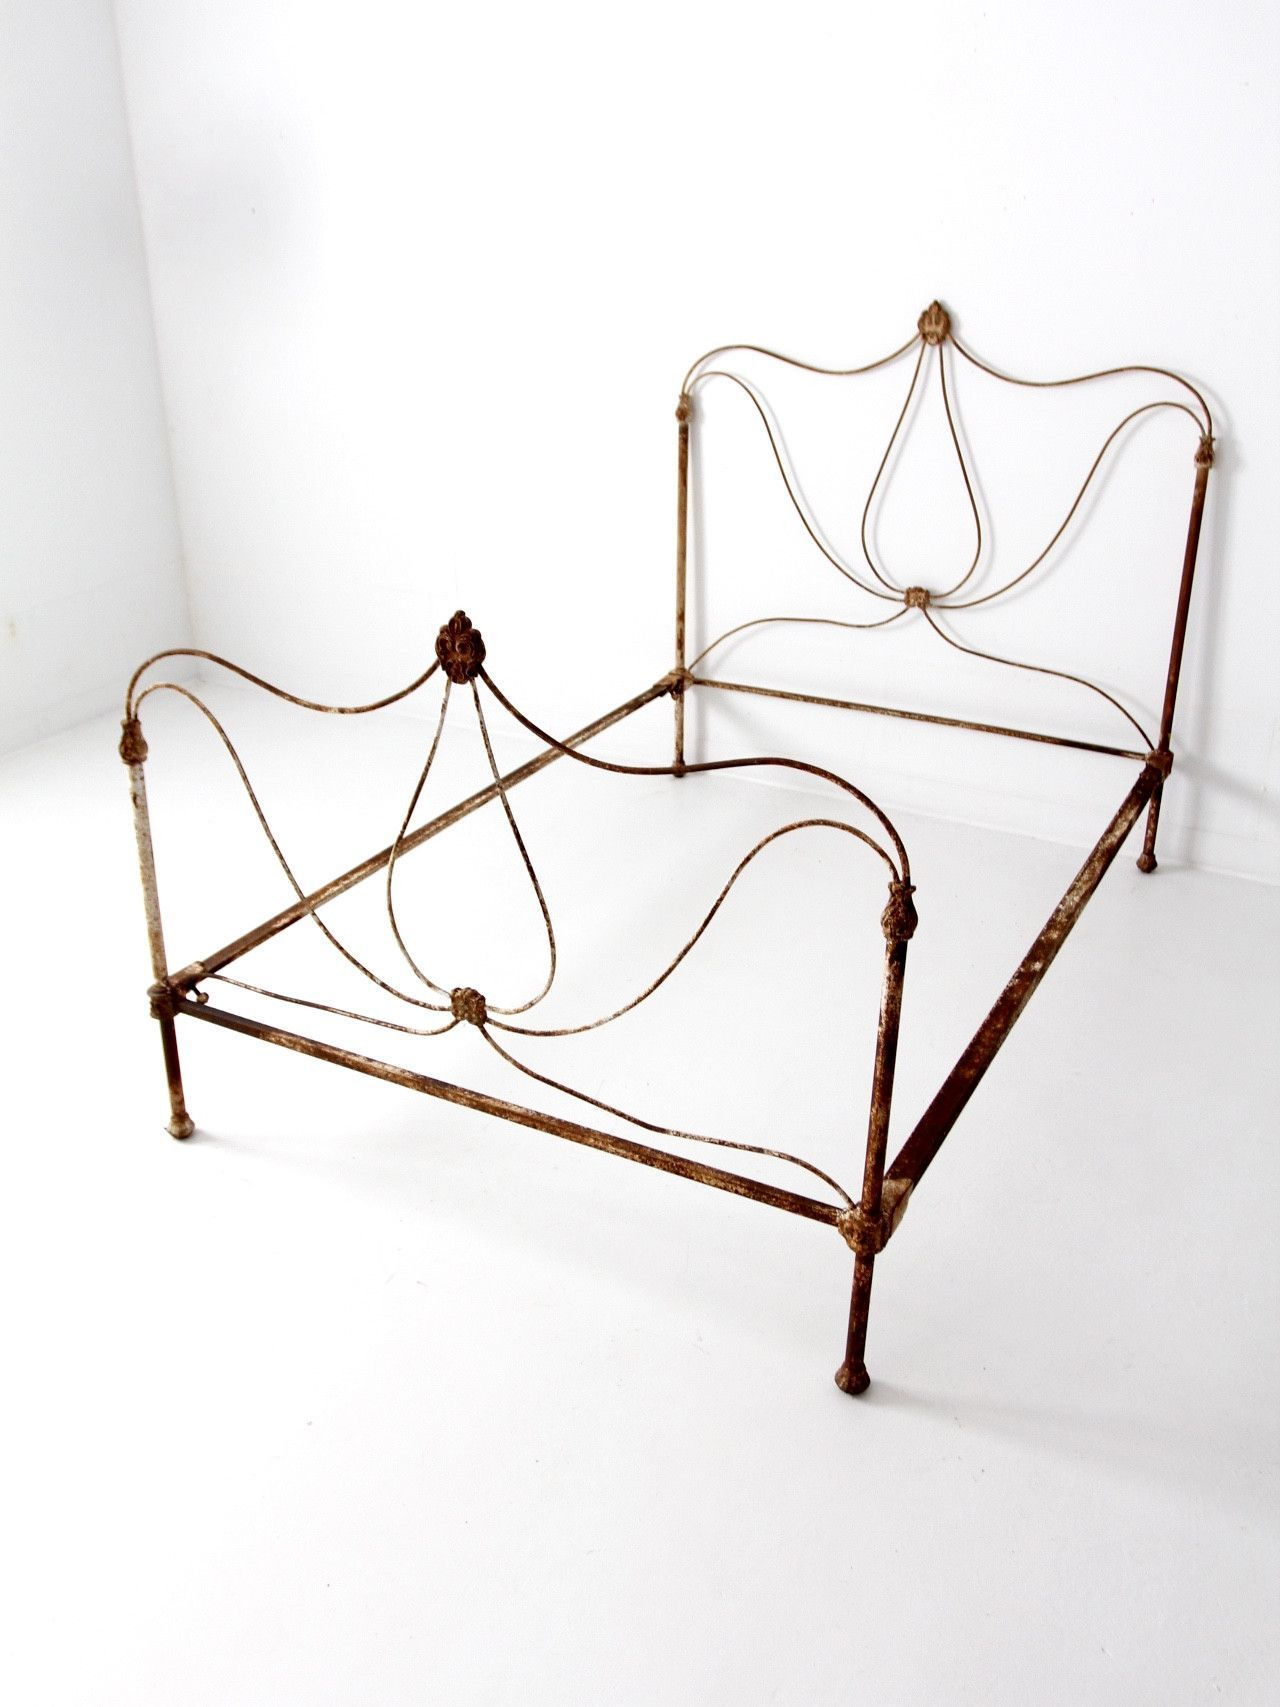 An antique iron bed in the art nouveau style. A double